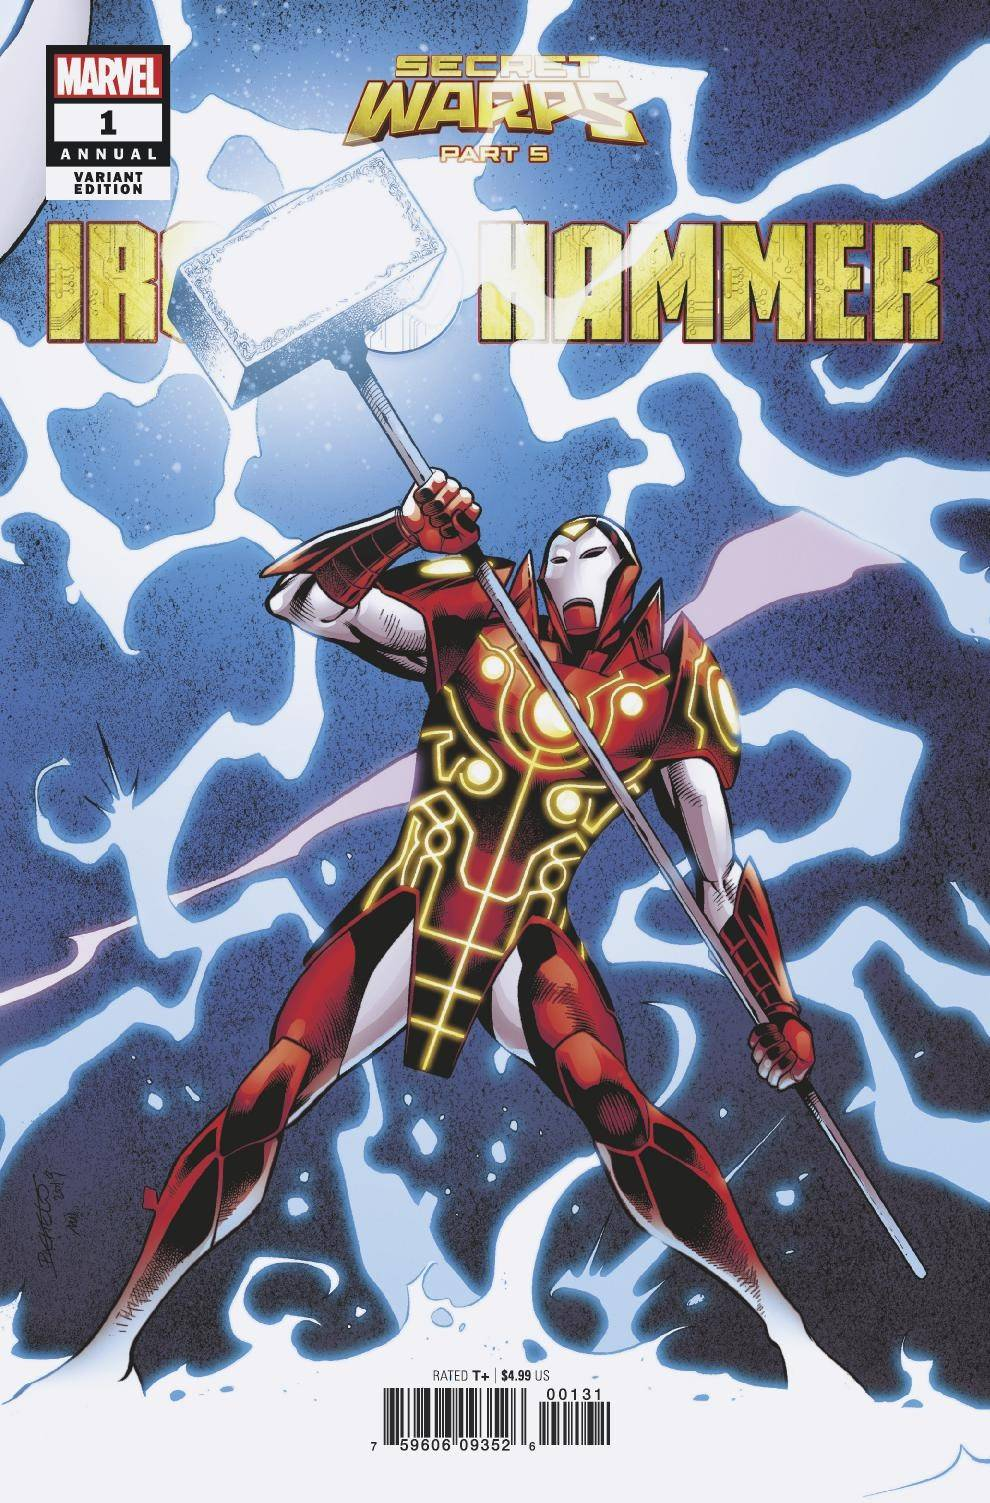 SECRET WARPS IRON HAMMER ANNUAL 1 PACHECO CONNECTING VAR.jpg